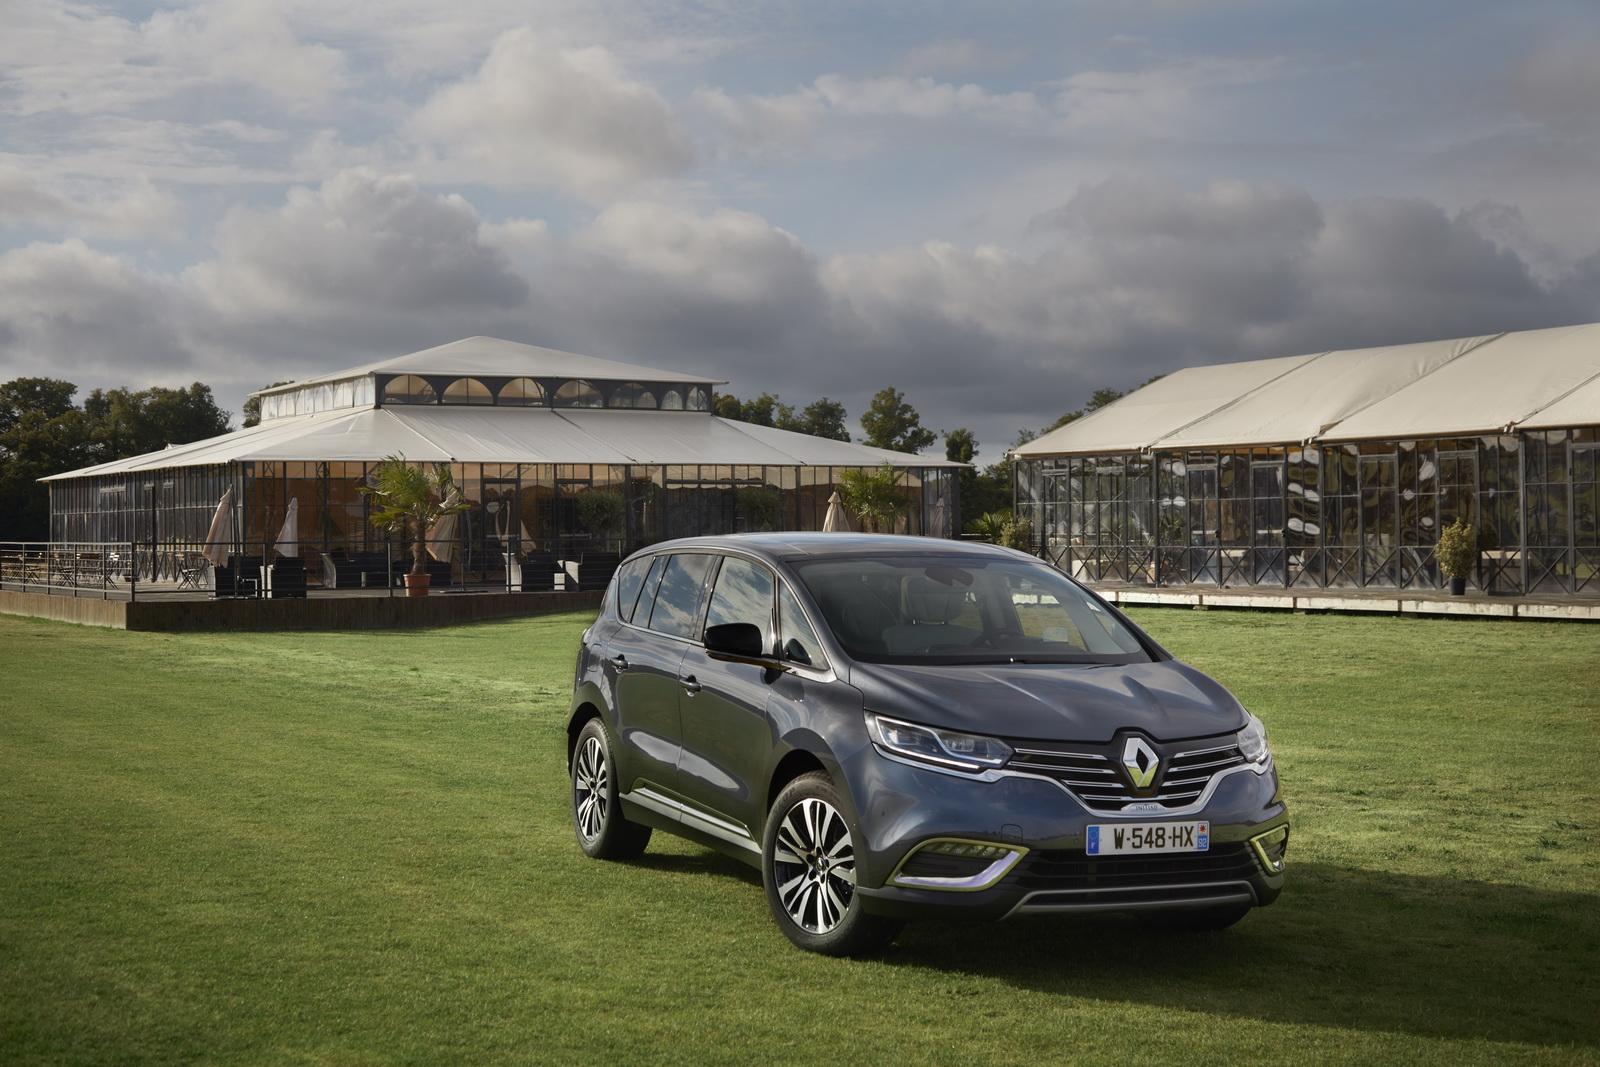 renault launches 2017 espace with alpine s turbo engine 71 pics. Black Bedroom Furniture Sets. Home Design Ideas